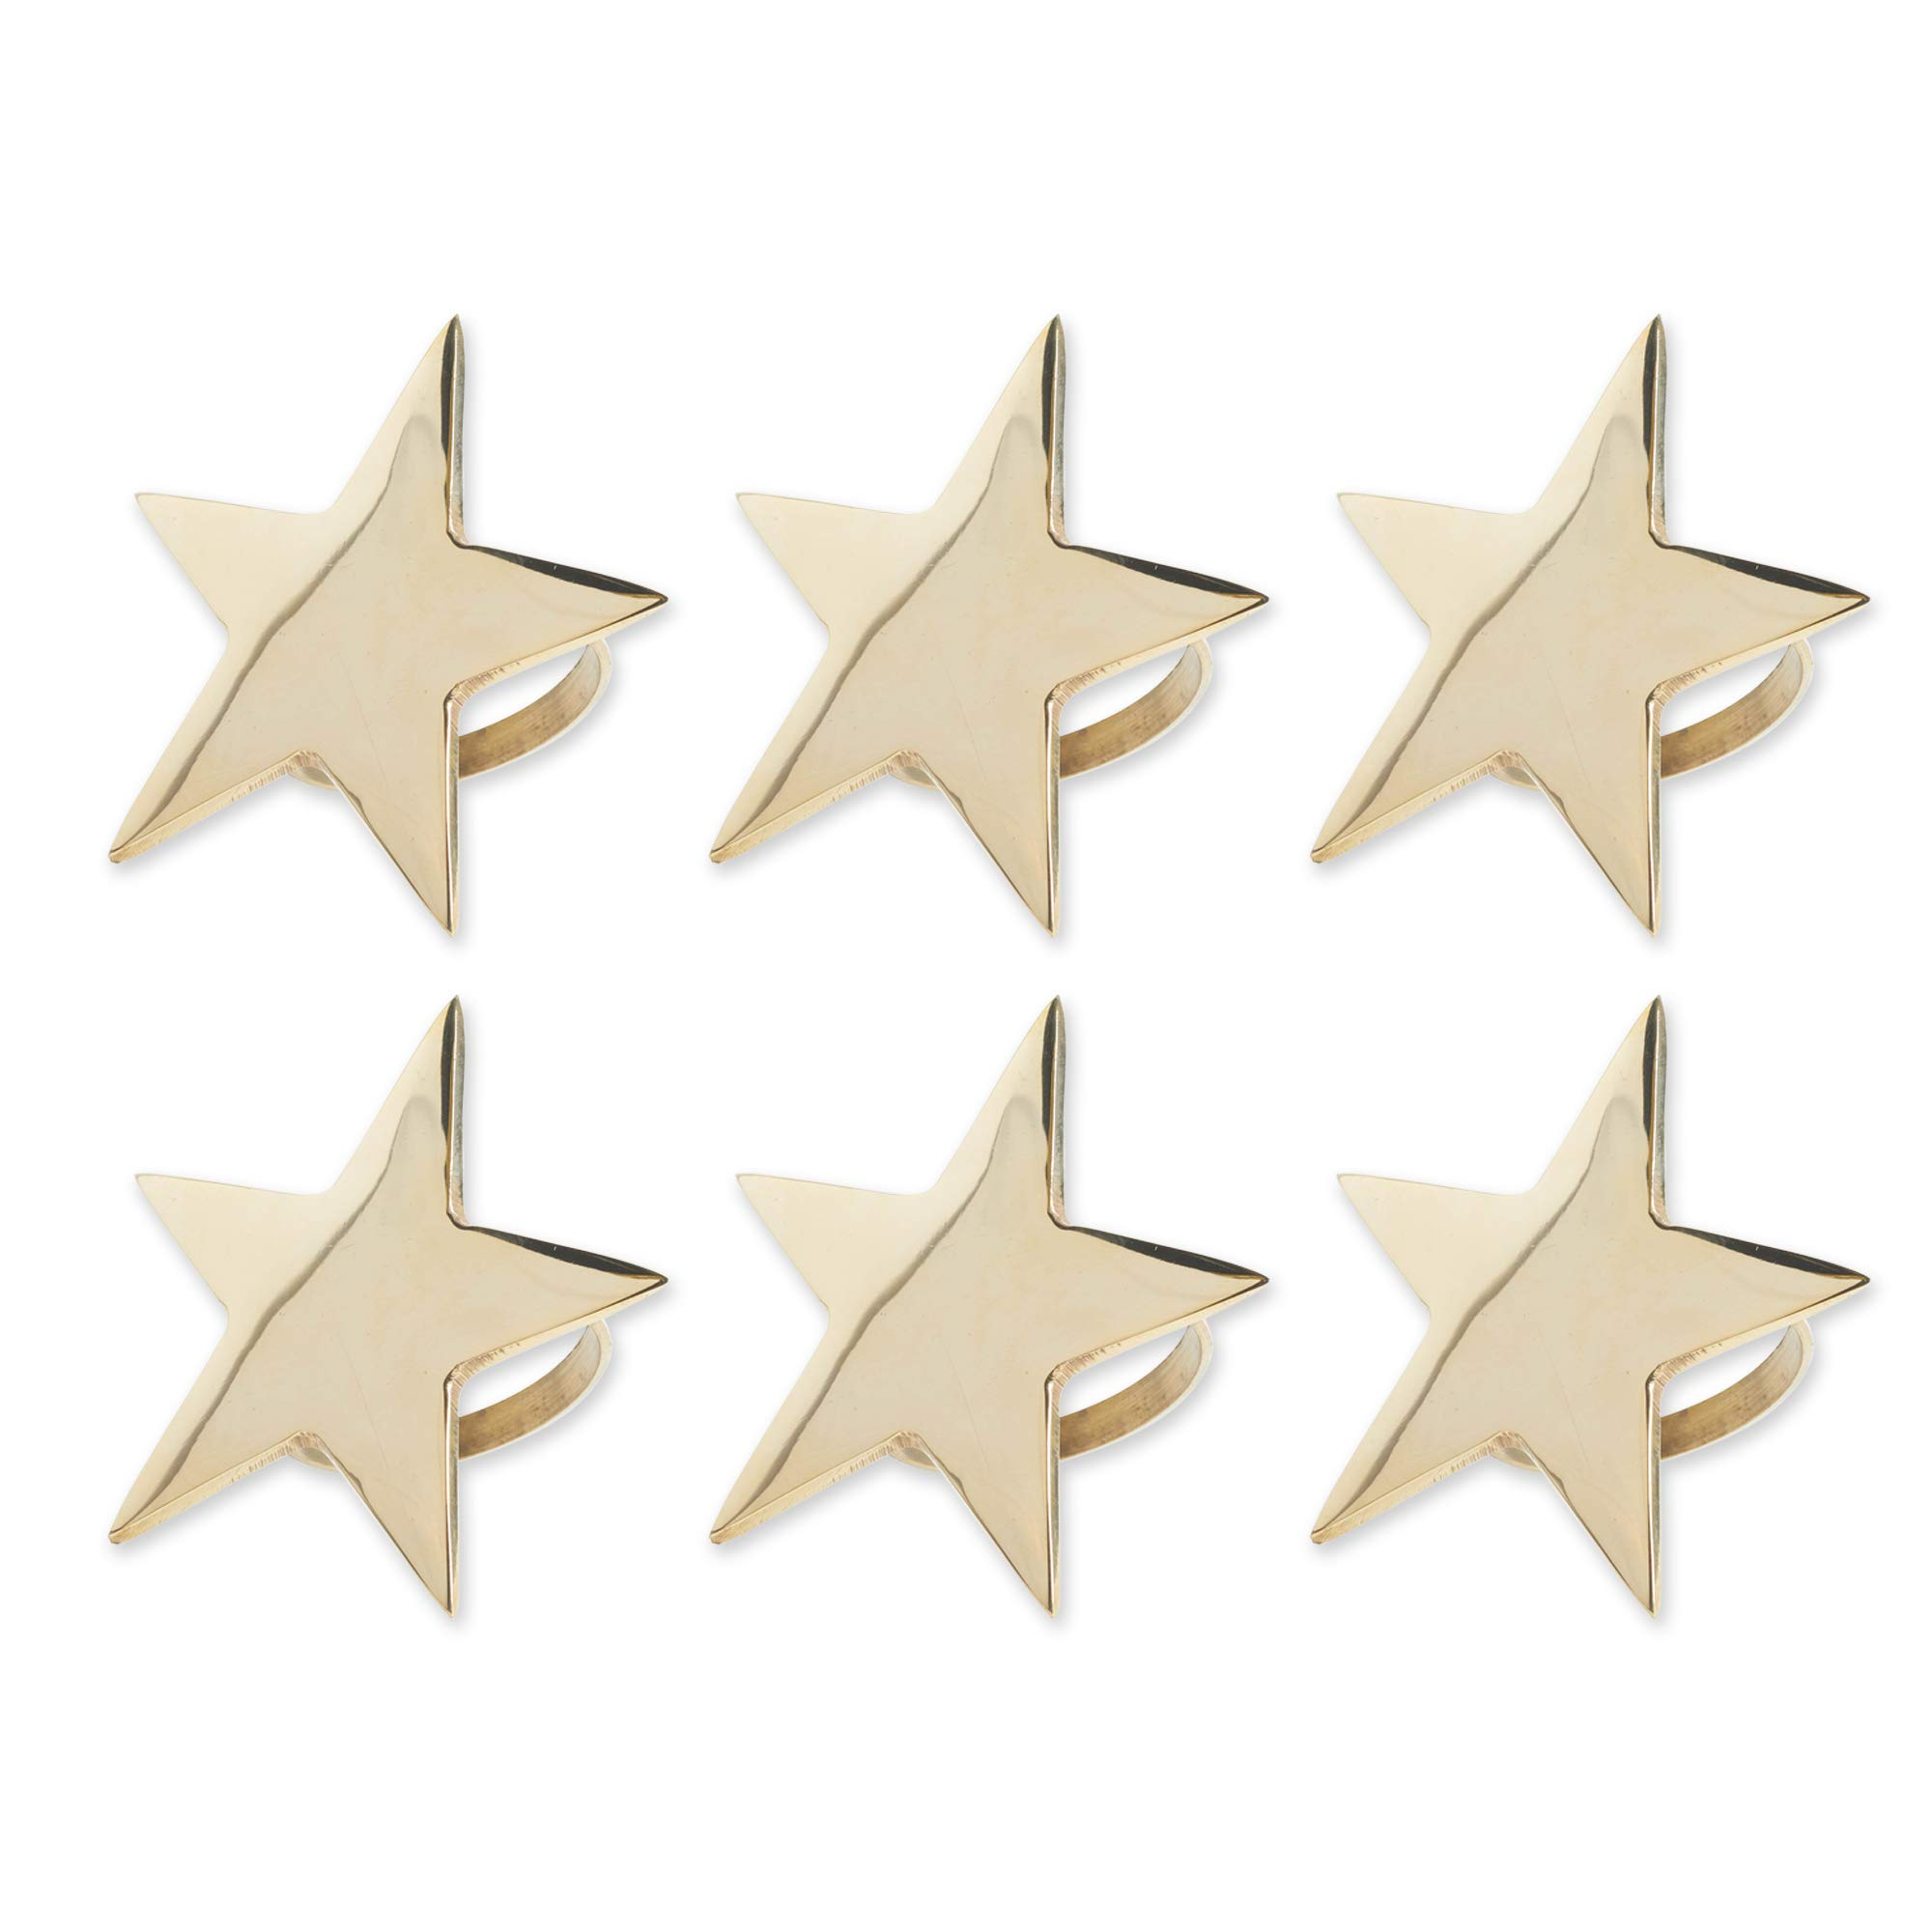 DII Modern Chic Napkin Rings for Christmas, Holidays, 4th of July, Dinner Parties, Weddings Receptions, or Everyday Use, Set Your Table With Style - Gold Star, Set of 6